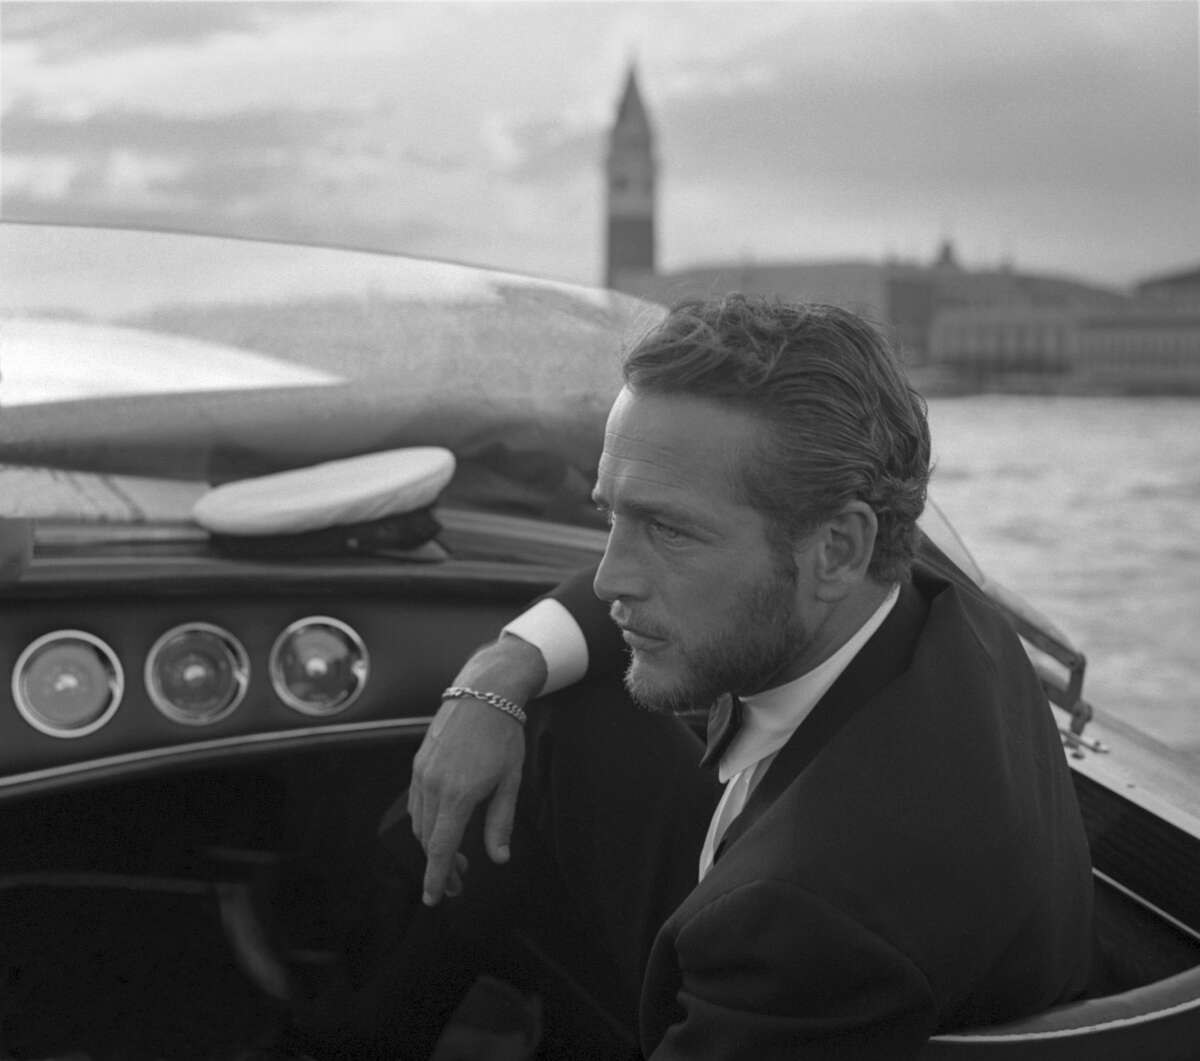 American actor Paul Newman, wearing a tuxedo and a bow tie, portrayed during a trip on a water taxi, a sailor cap on the dashboard, St. Mark Square in the background, Venice 1963. (Photo by Archivio Cameraphoto Epoche/Getty Images)